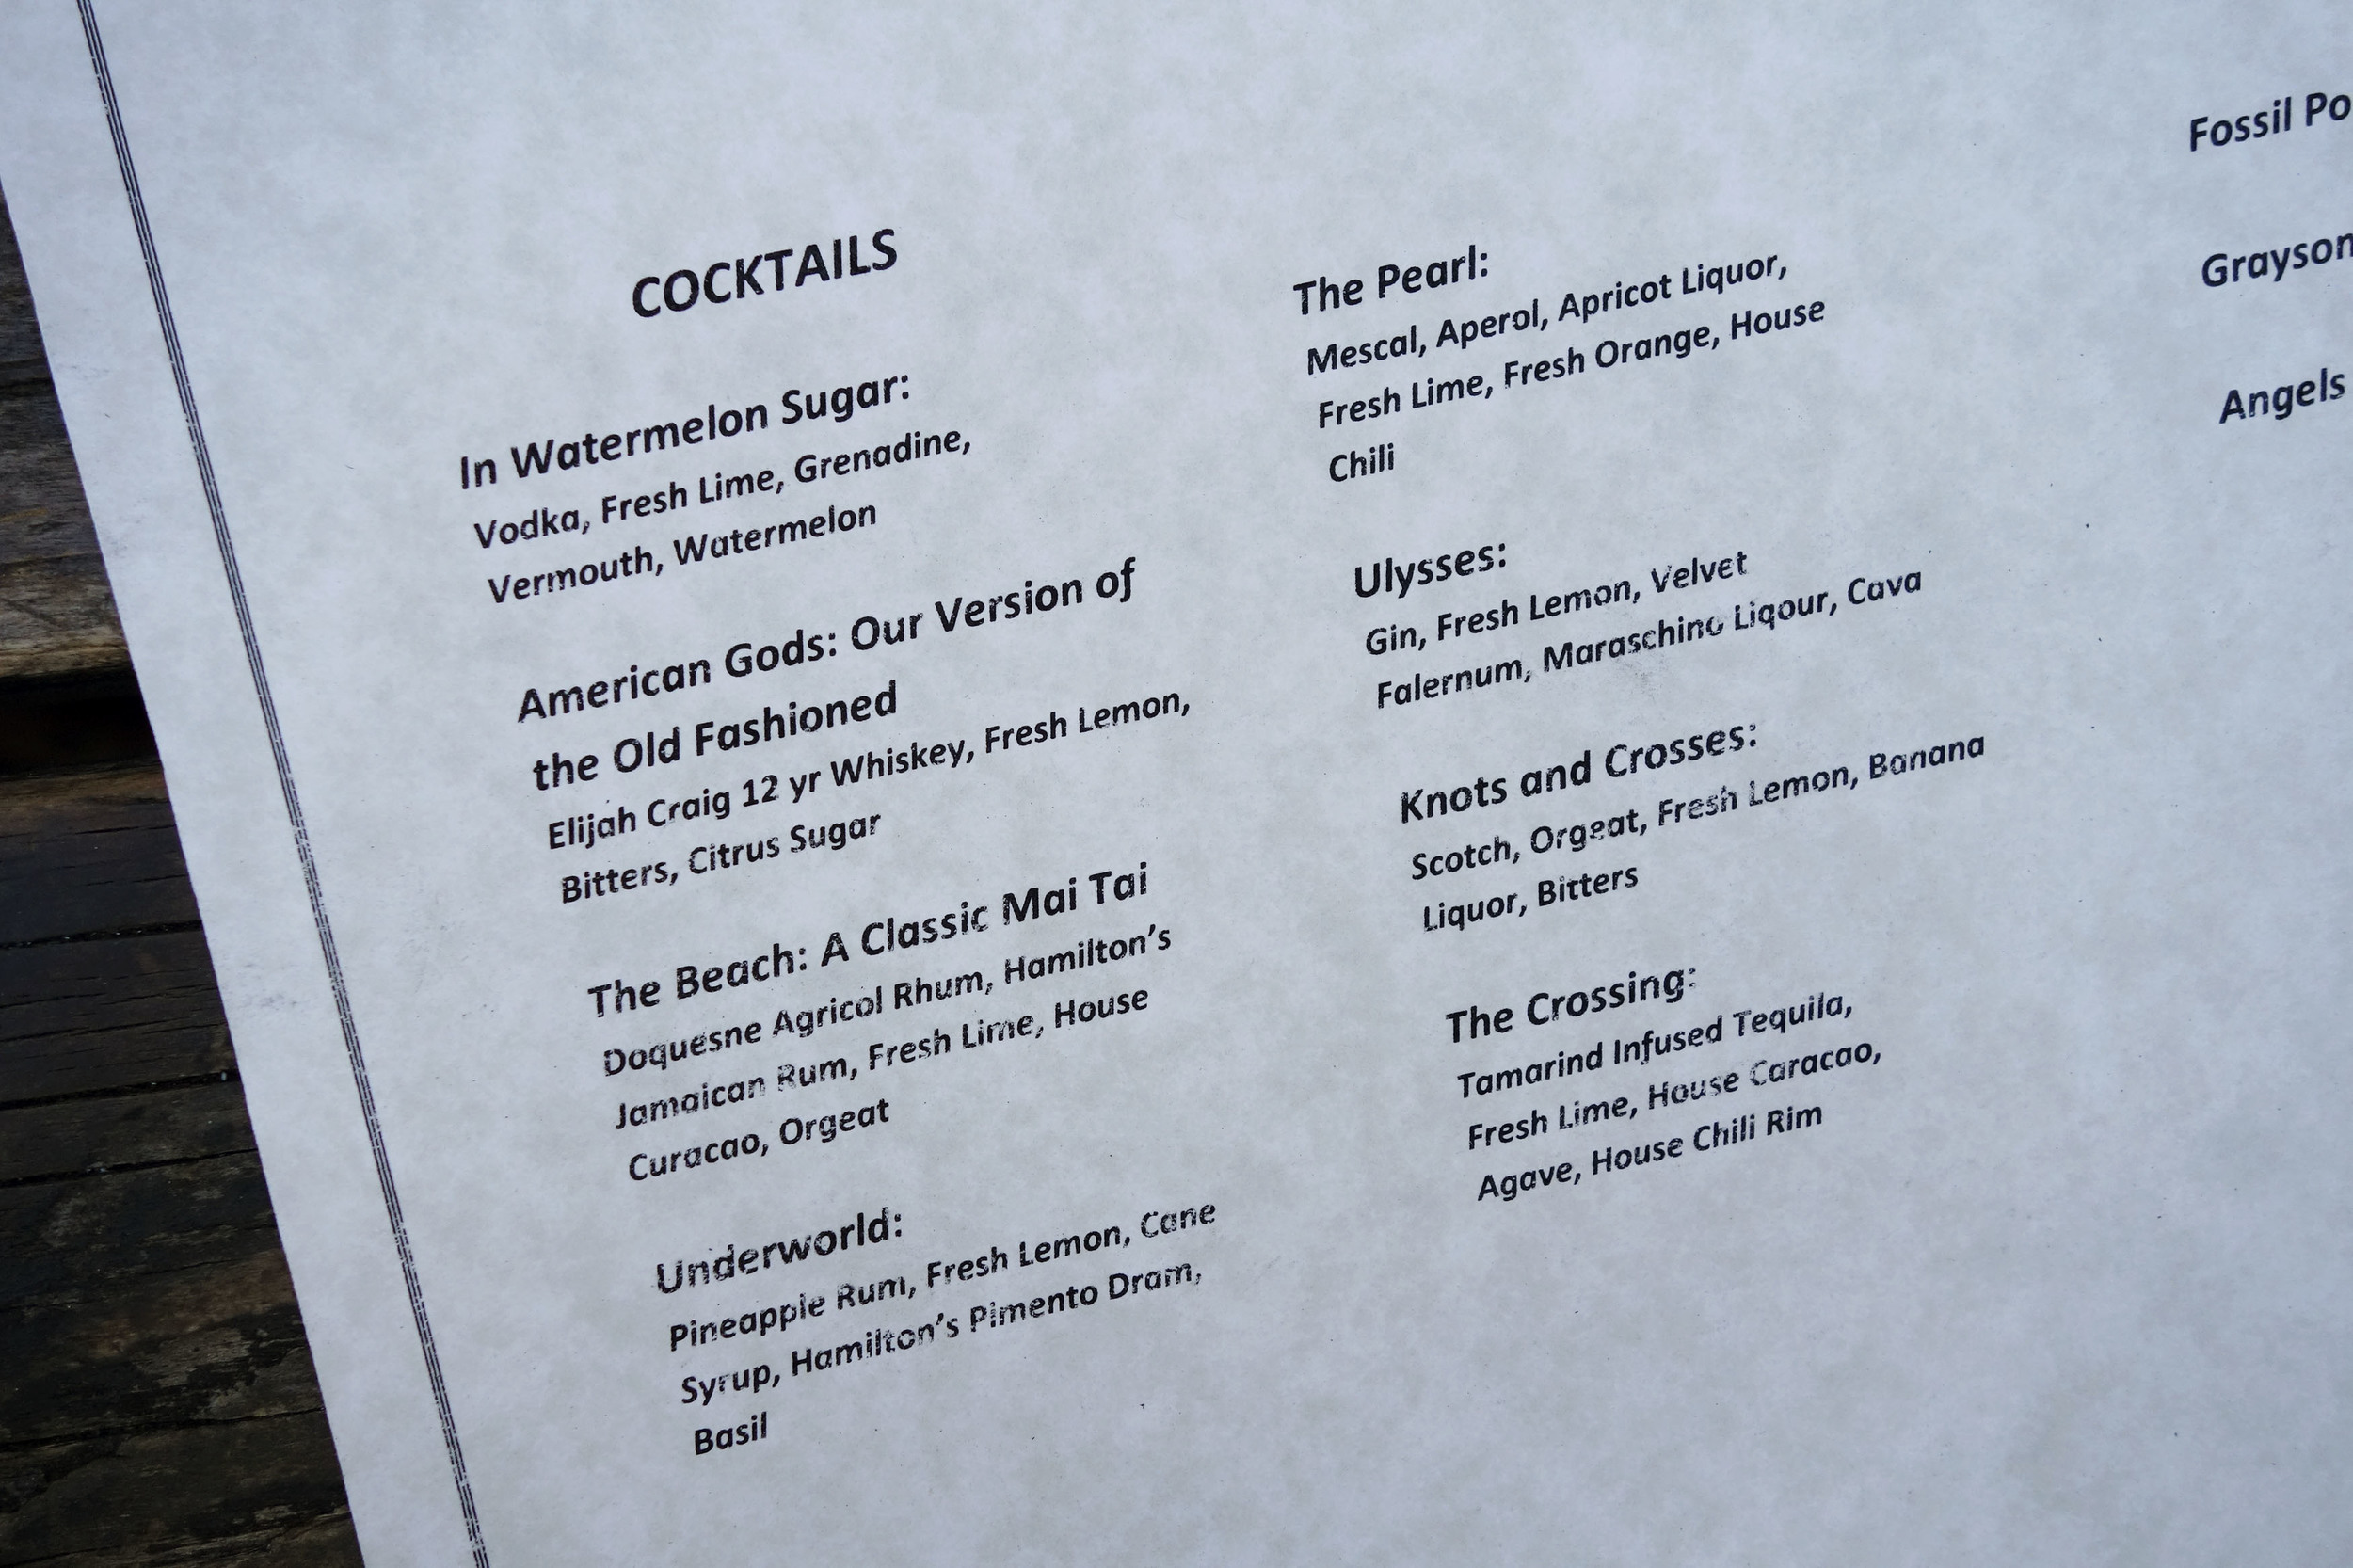 New cocktails launched